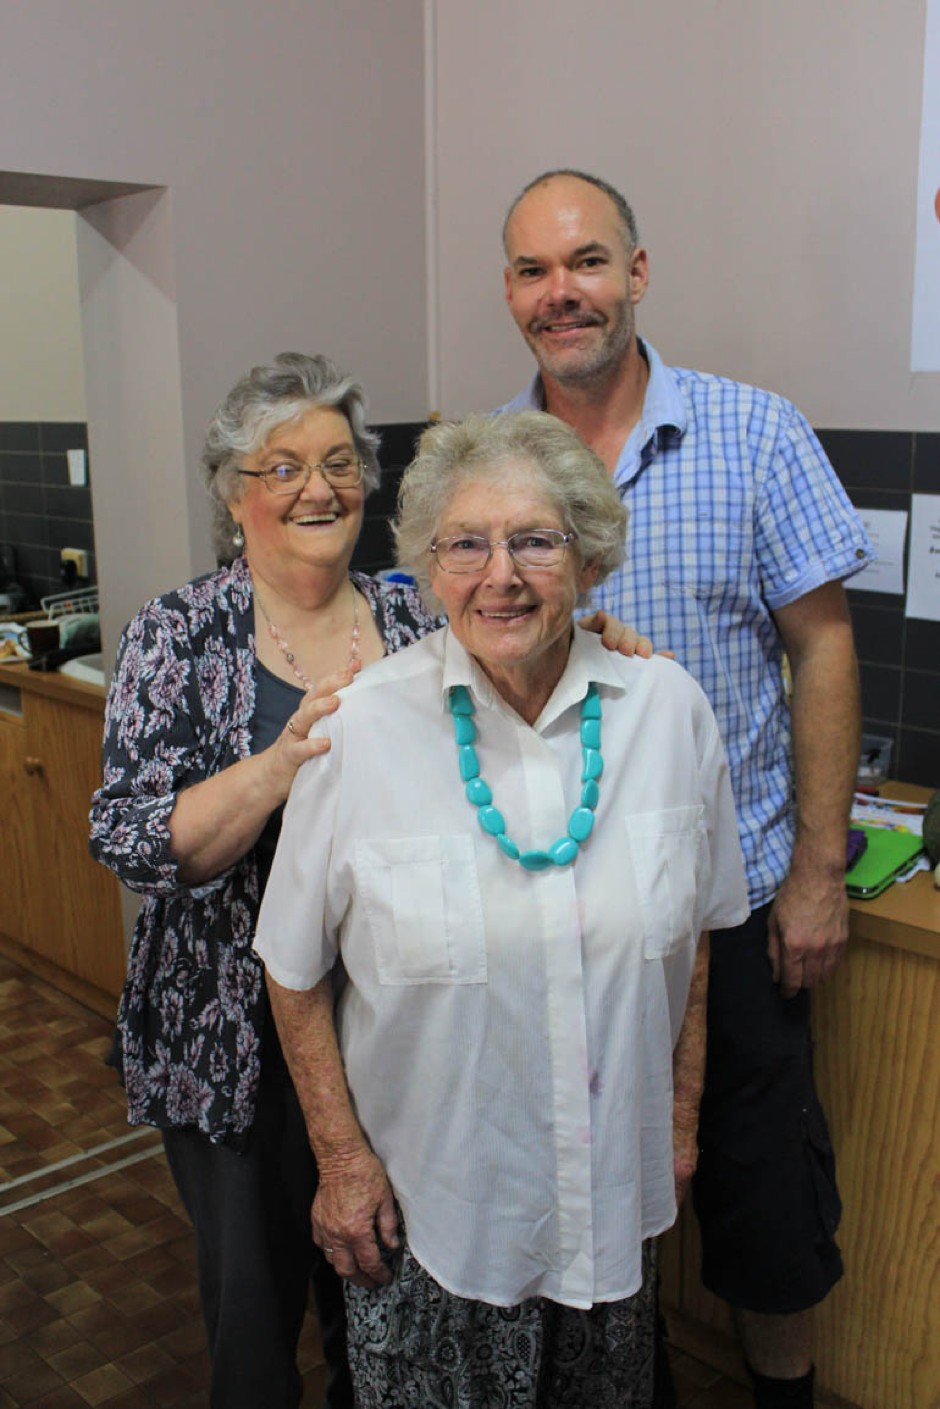 Former Tatiara Work Centre President Rosalie Crocker, TWC Oldest active member Marjorie Badman and Secretary / Treasurer Shaun Taylor at the 50th Anniversary celebrations.